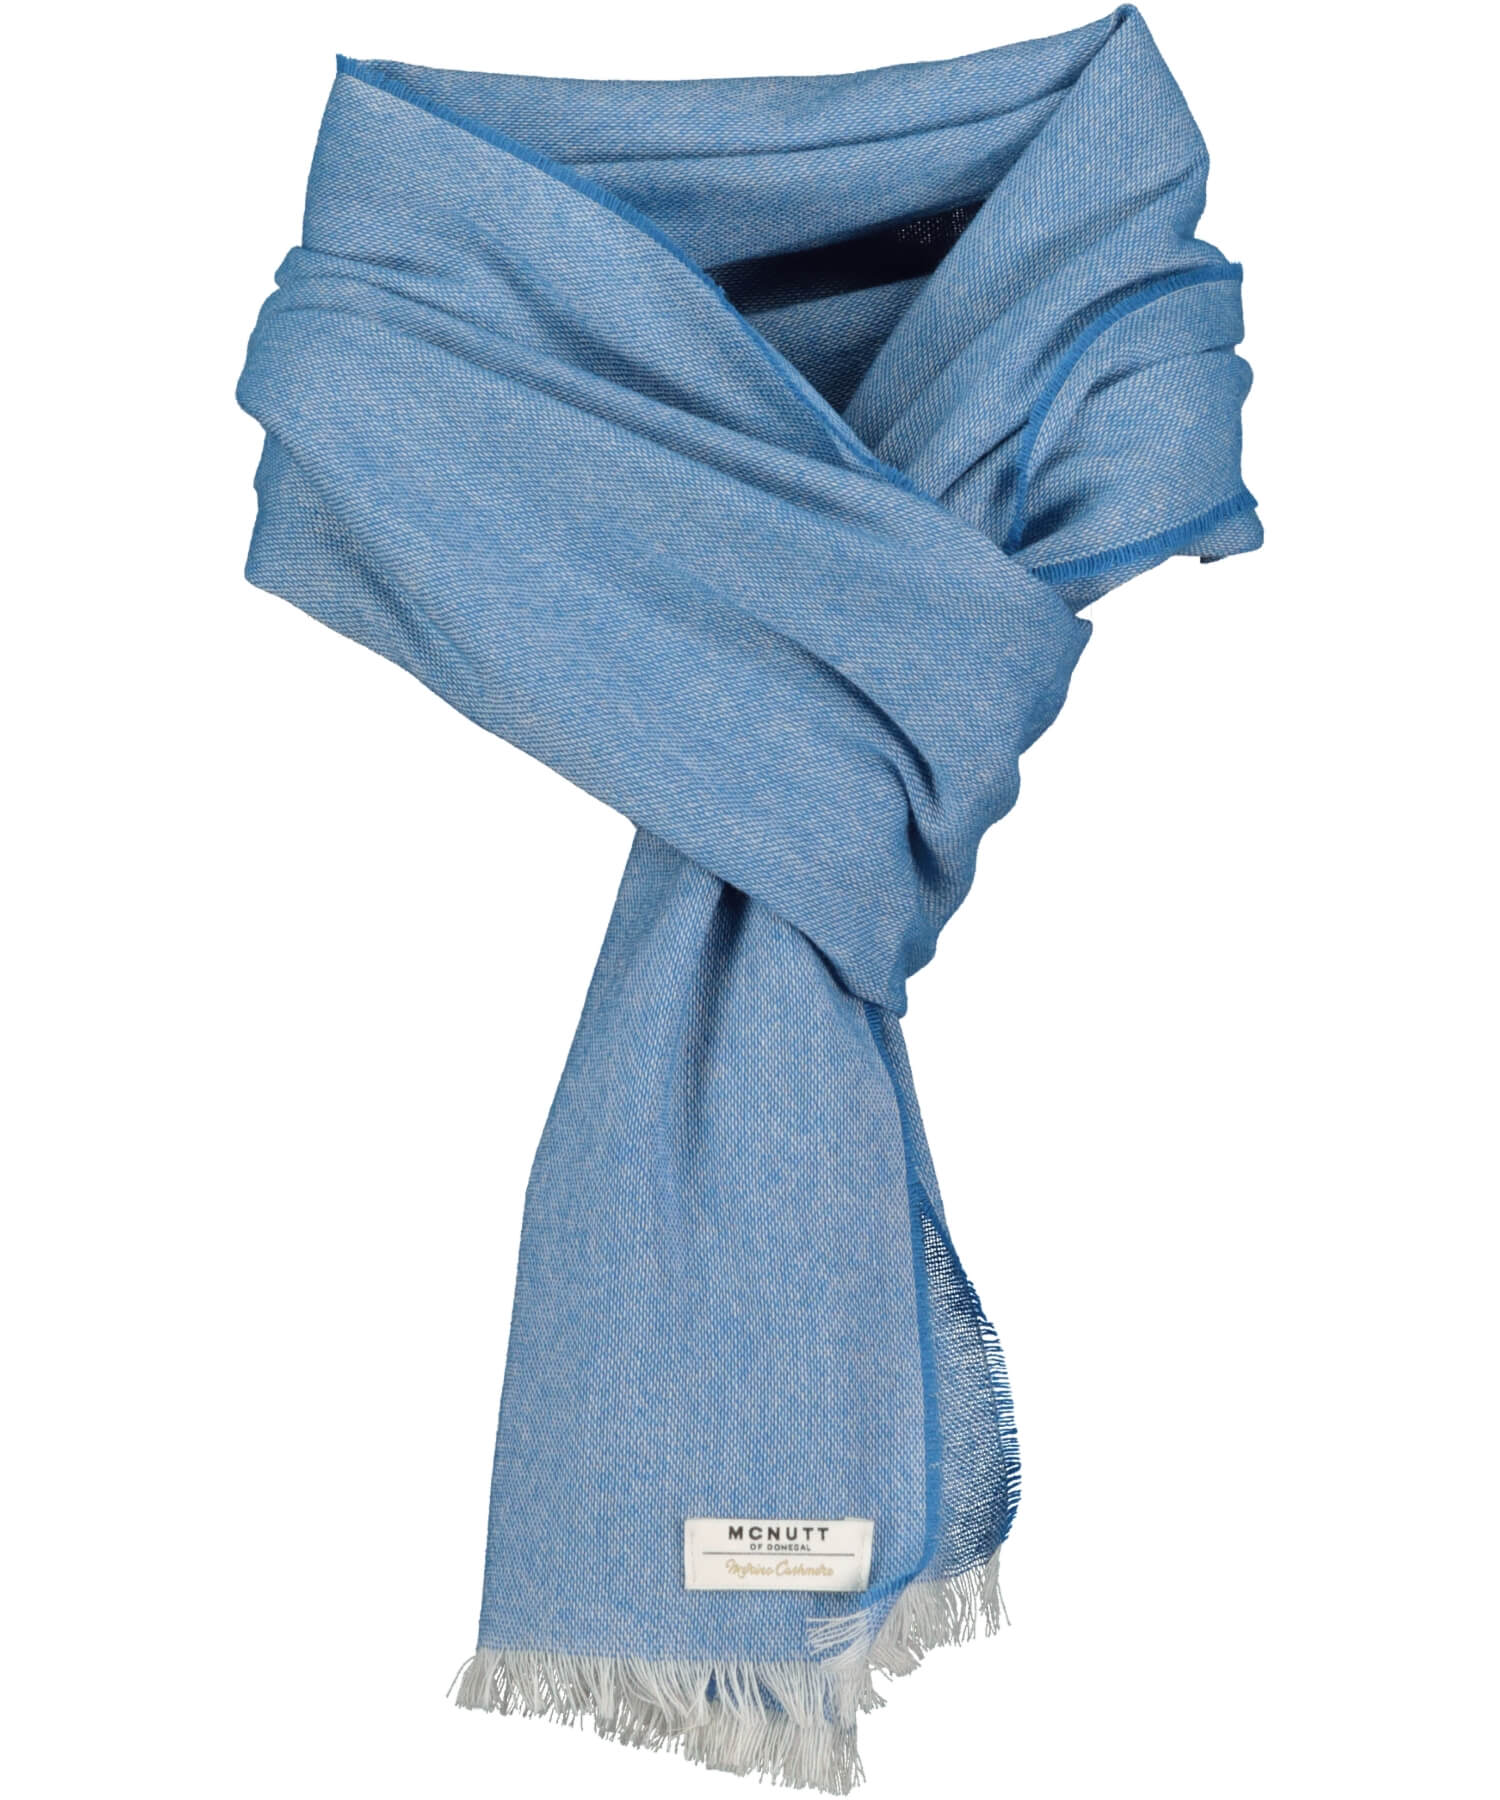 Paris Scarf - Amalfi Blue - [McNutts] - Ladies Scarves & Gloves - Irish Gifts